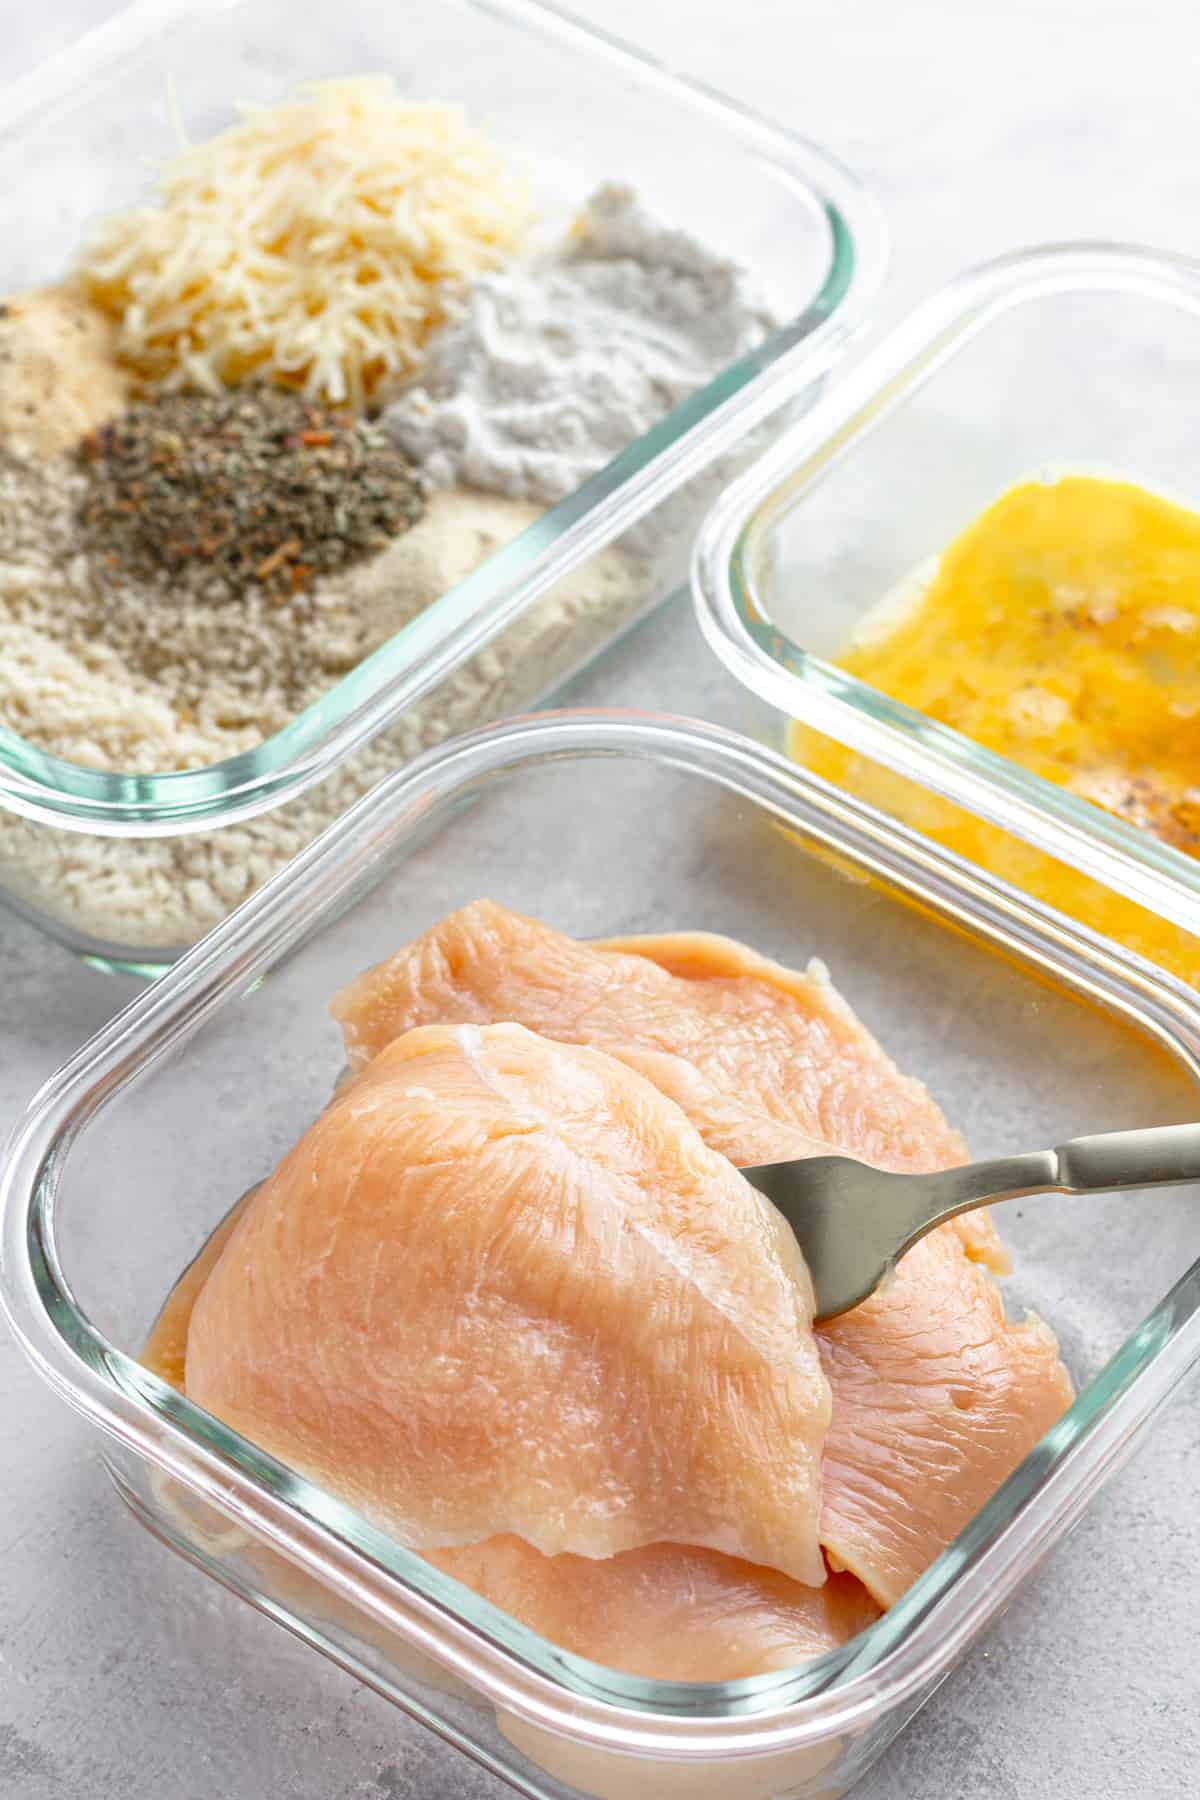 Three Glass Containers on a Counter – One Containing Raw Chicken, One Containing the Egg Mixture and One Containing the Un-Combined Breading Mixture